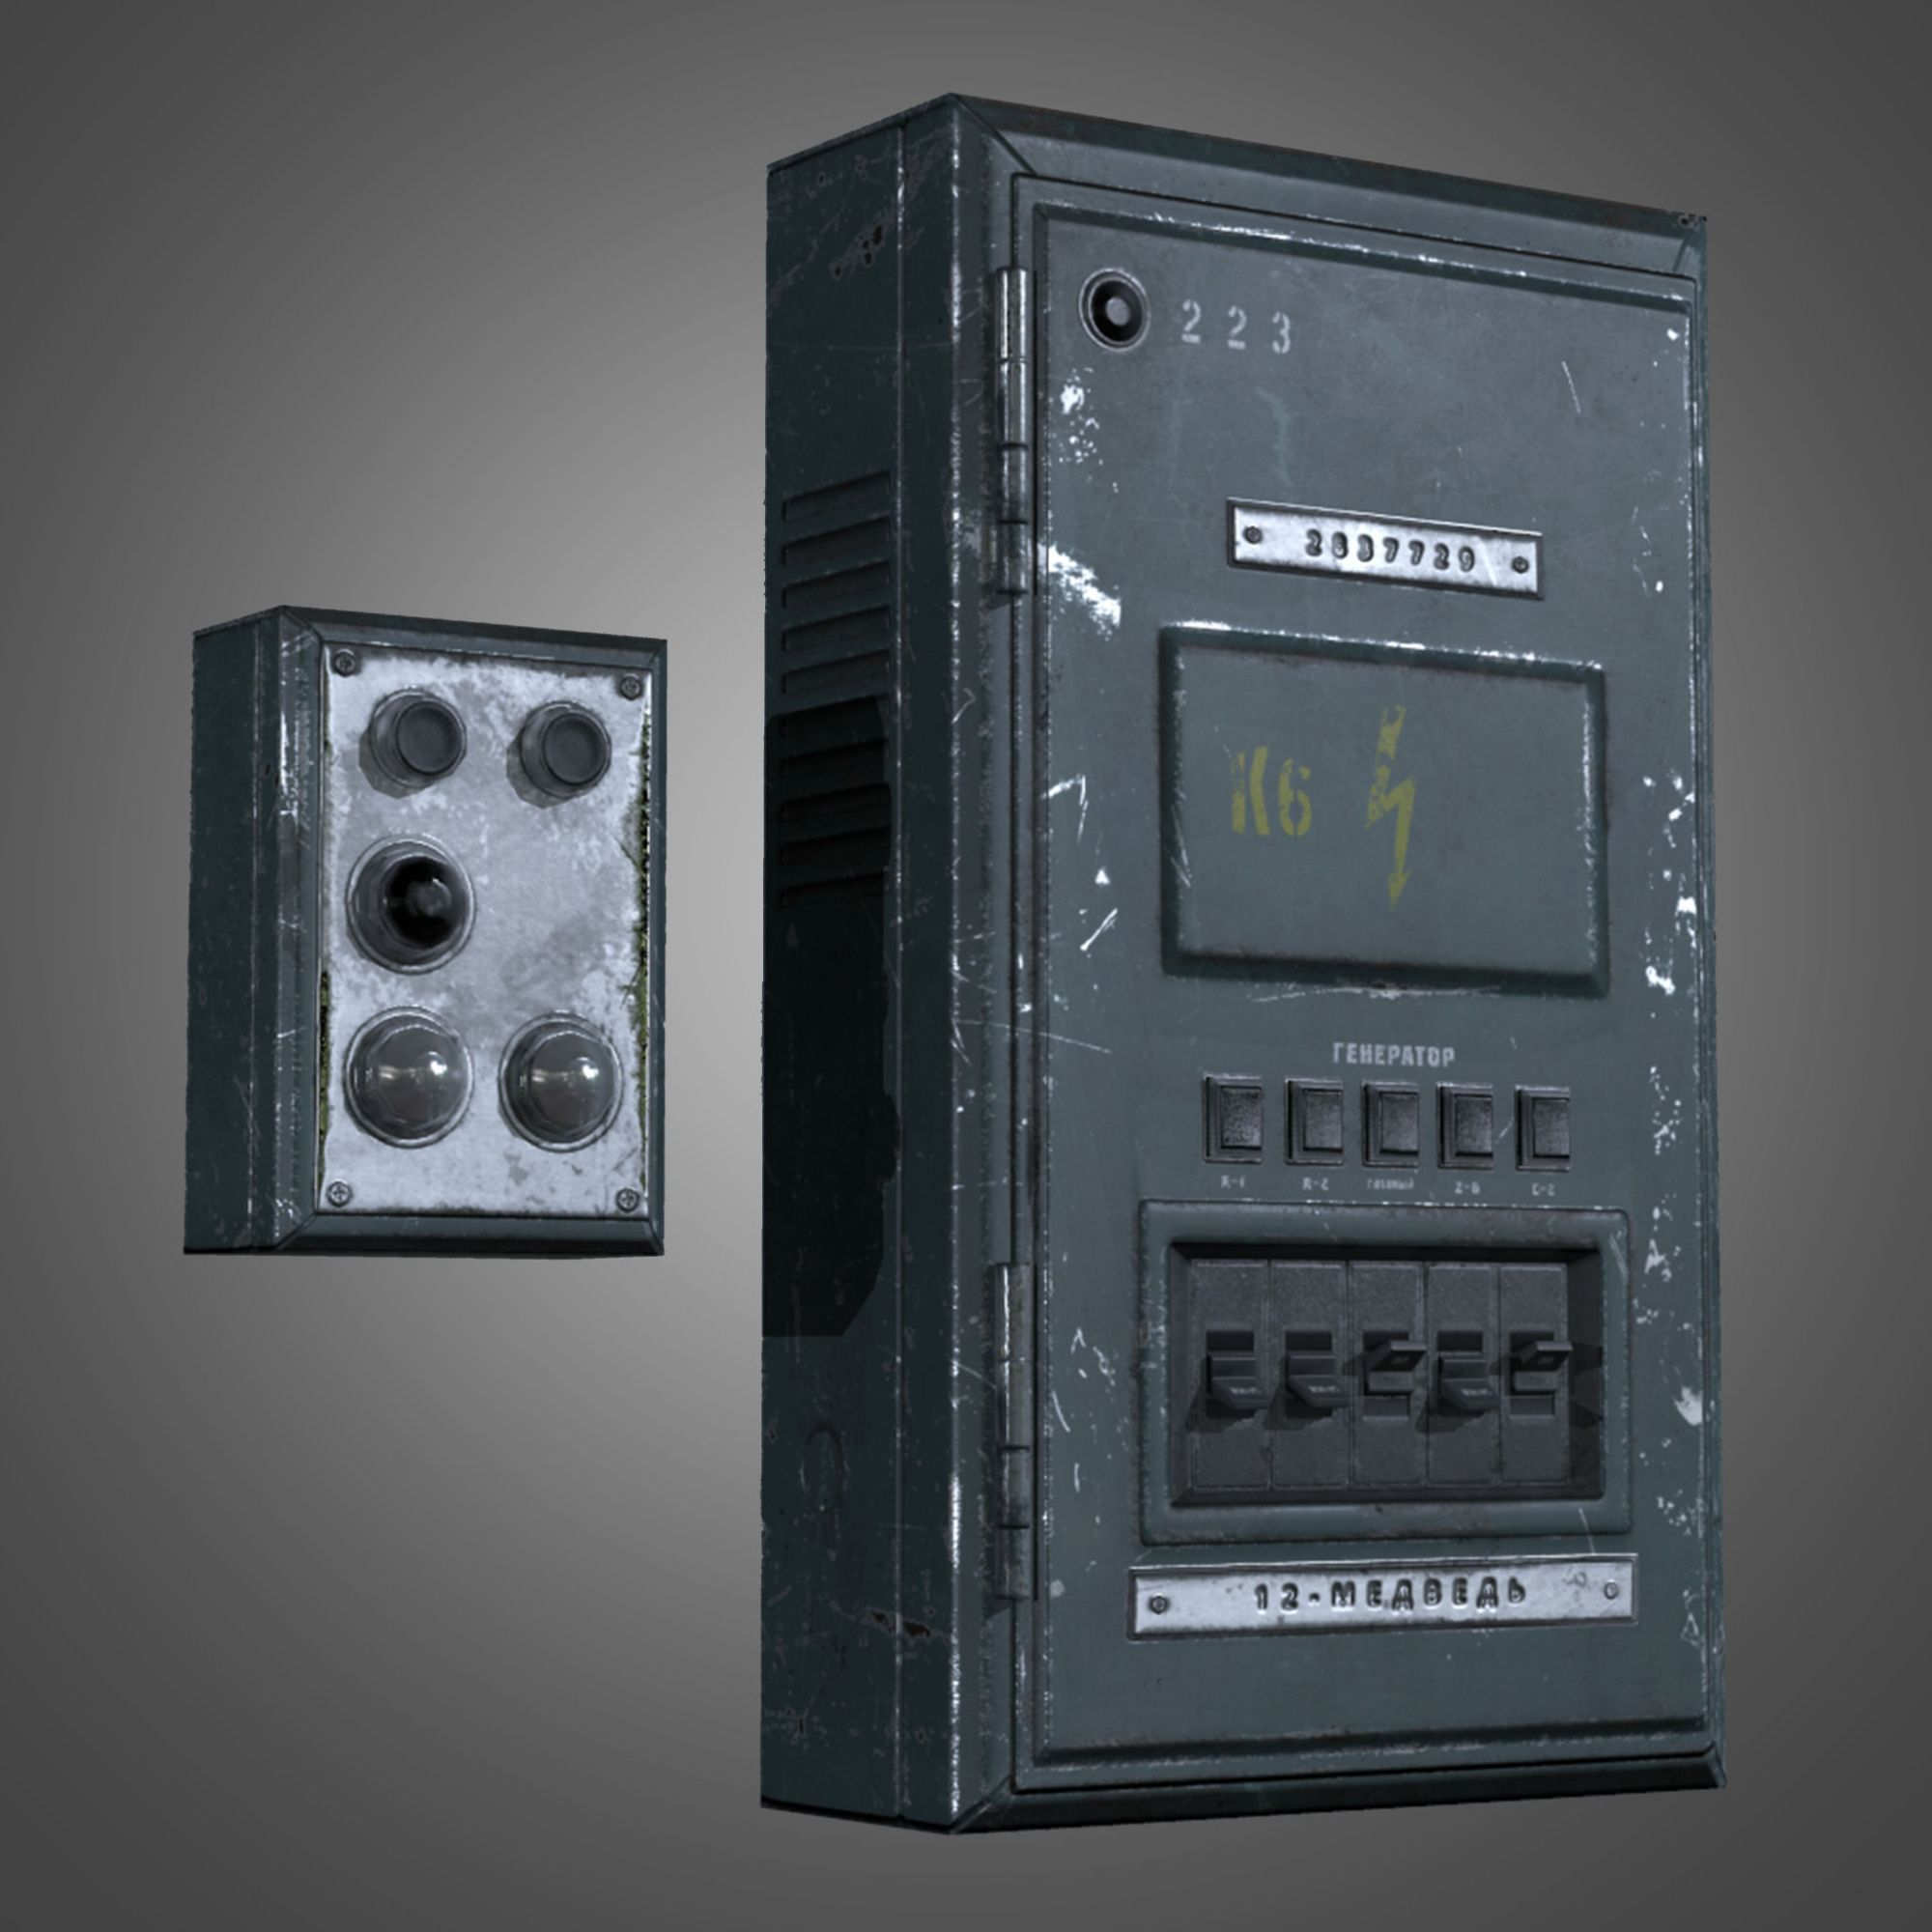 hight resolution of industrial fuse box set pbr game ready 3d model low poly obj mtl fbx